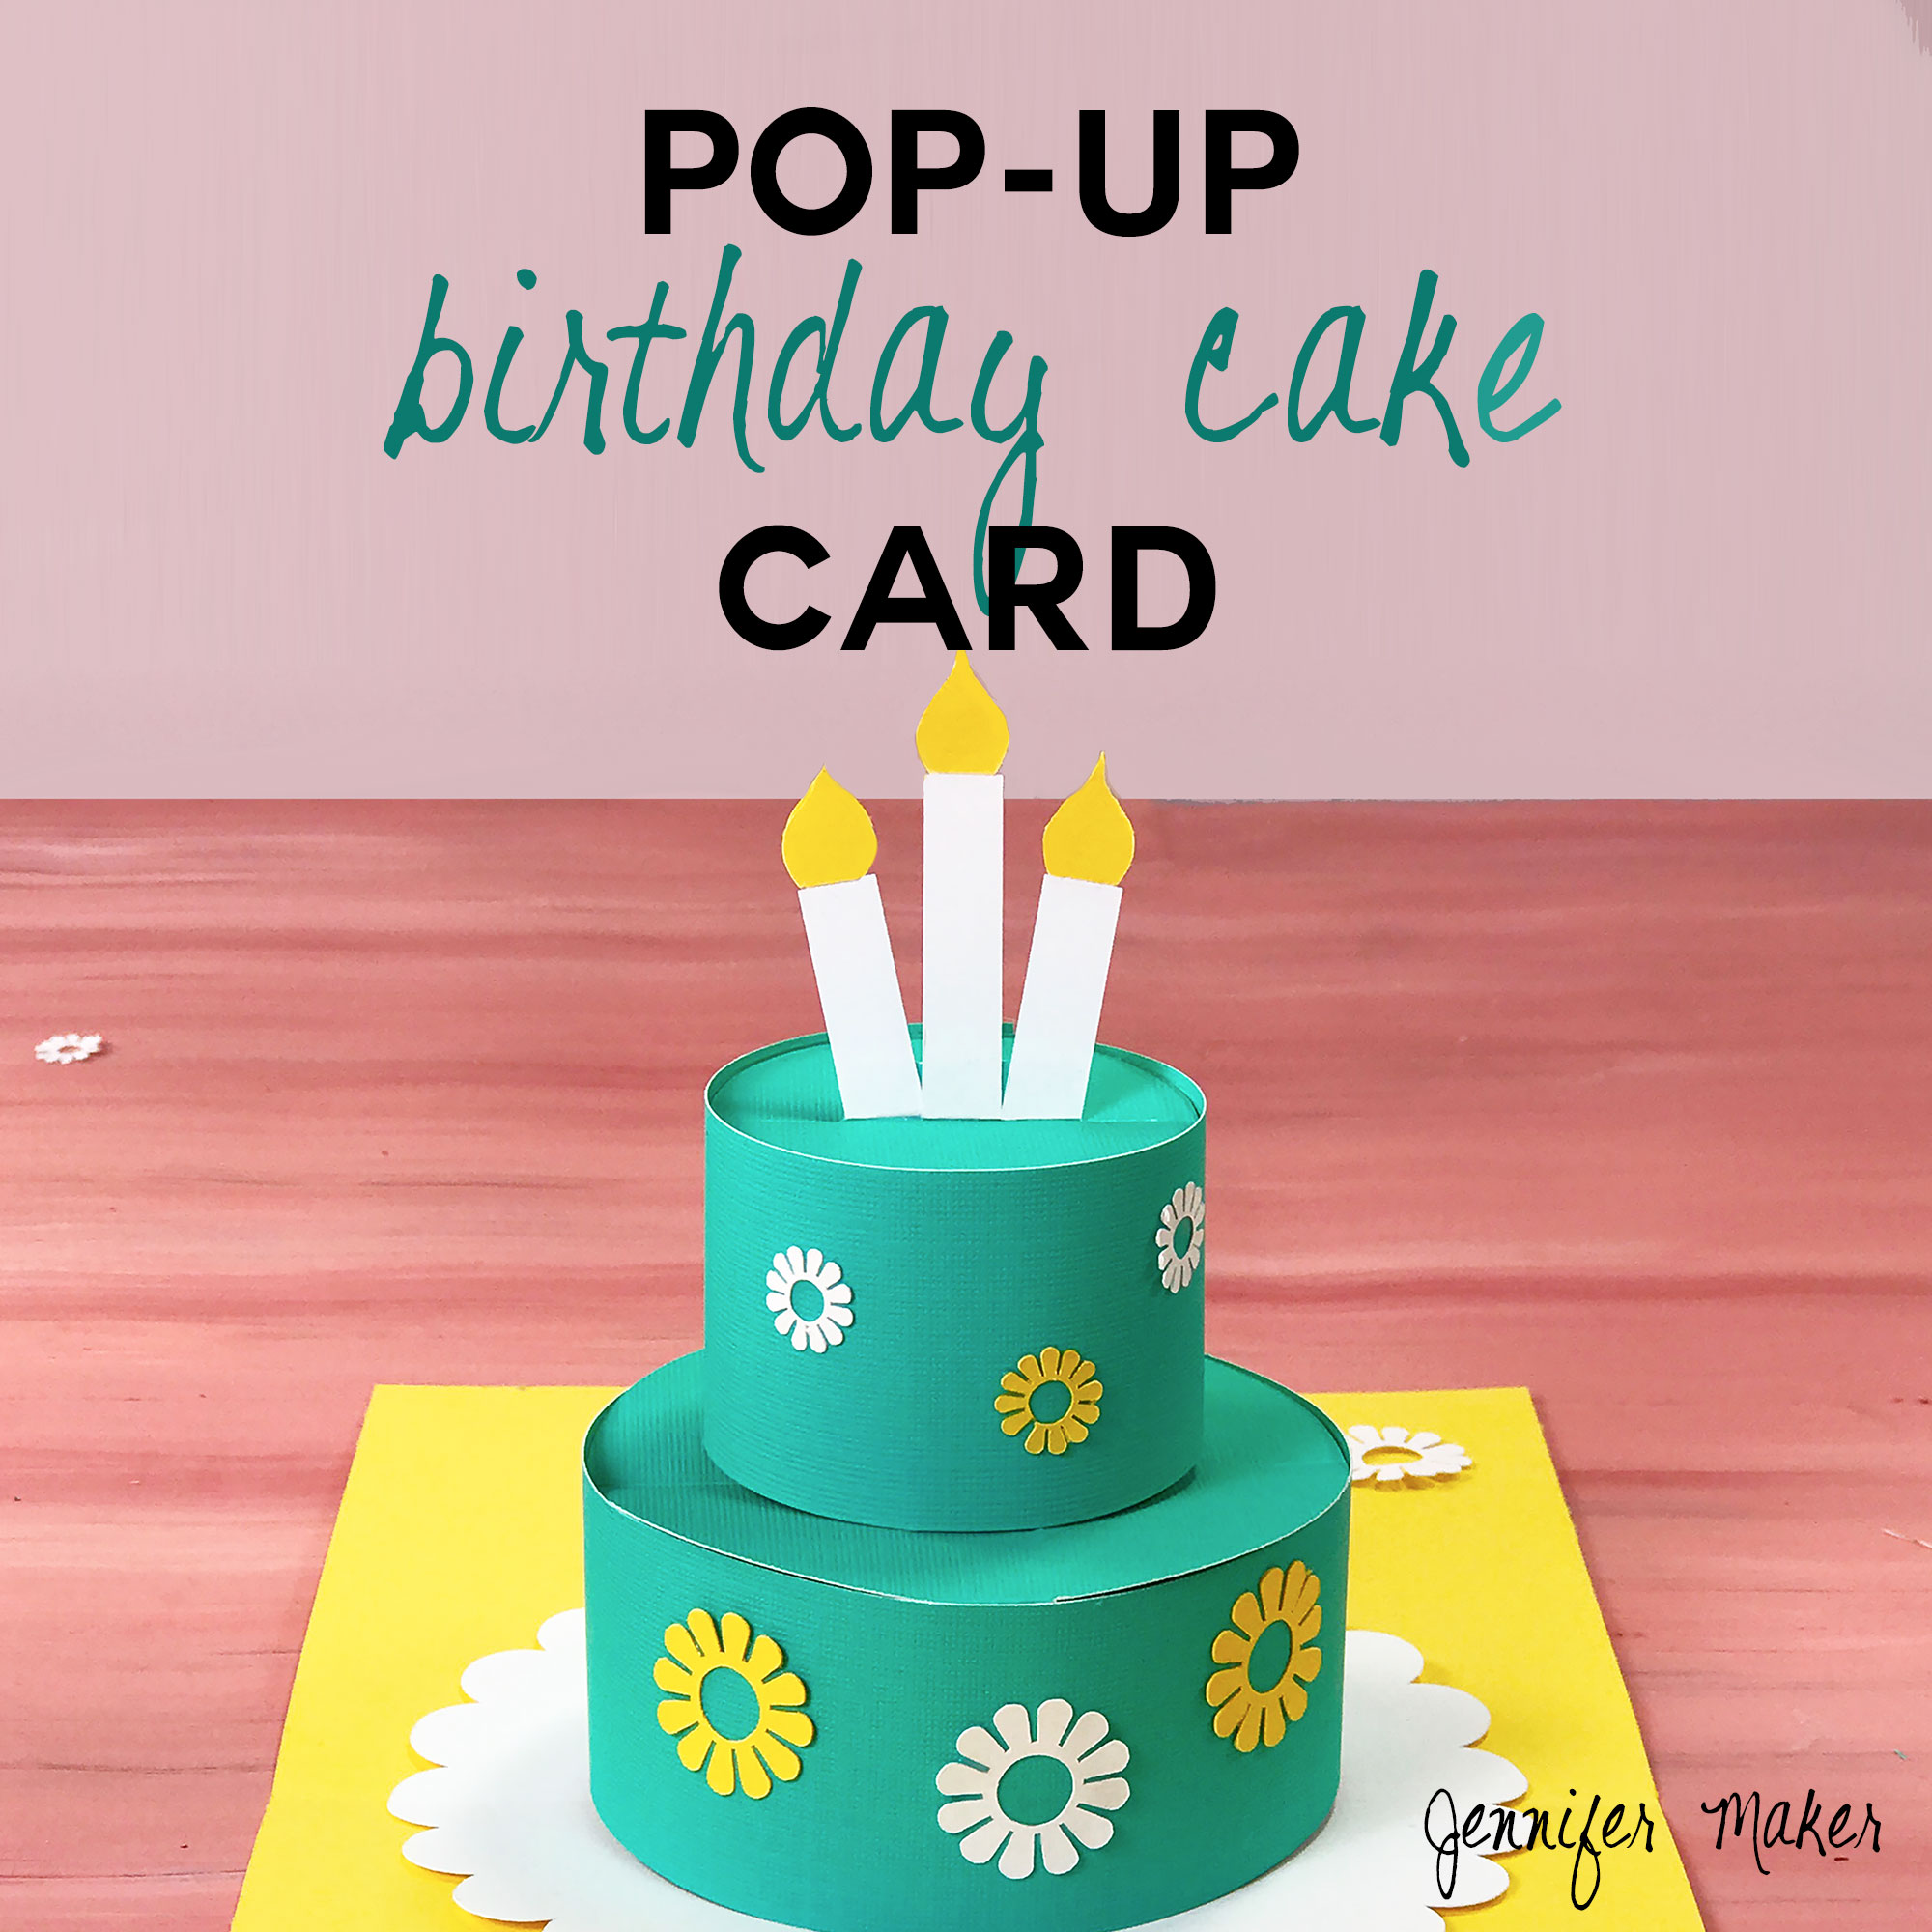 How to make a pop up birthday cake card jennifer maker how to make a pop up birthday cake card bookmarktalkfo